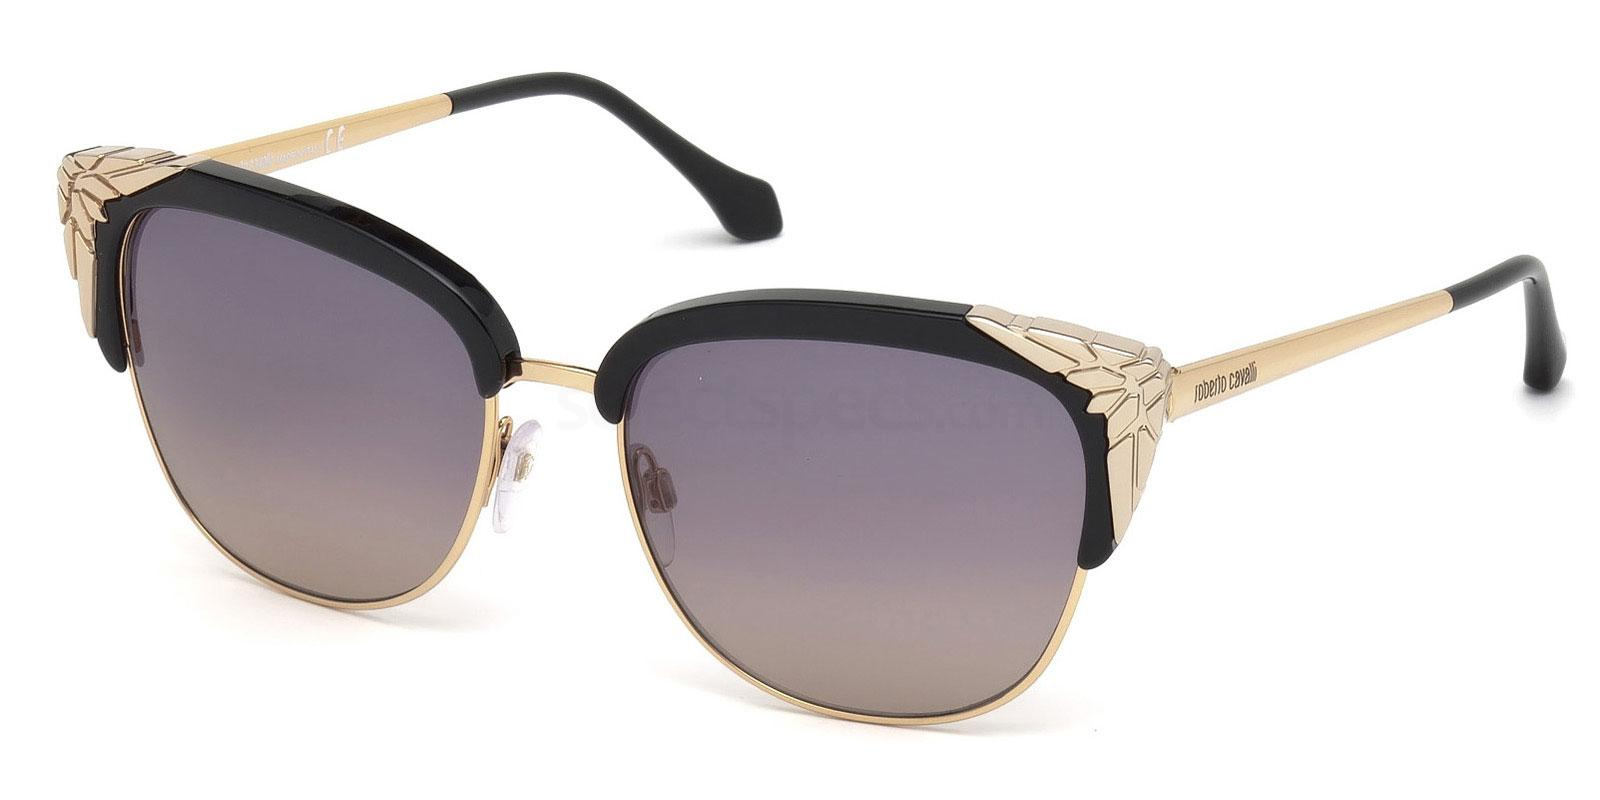 cat eye gold embellished roberto cavil sunglasses Ava (Only lovers left alive insp.)